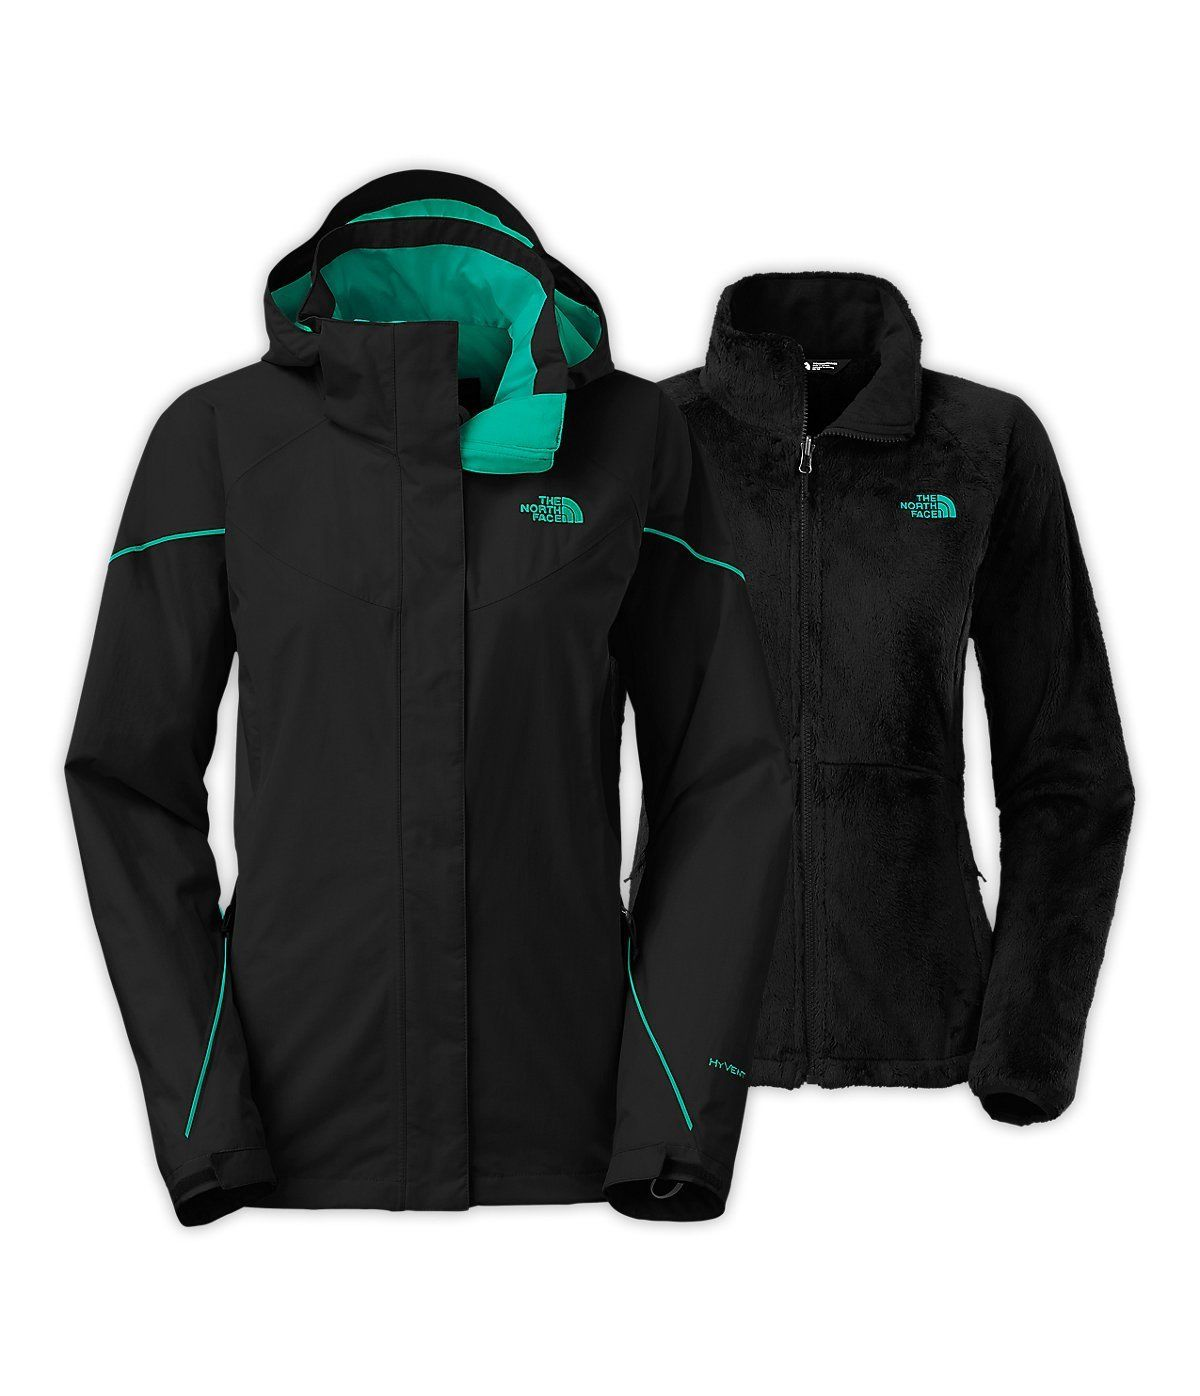 Amazon Com The North Face Boundary Triclimate Jacket Women S Sports Outdoors North Face Jacket Womens North Face Jacket Jackets For Women [ 1396 x 1200 Pixel ]